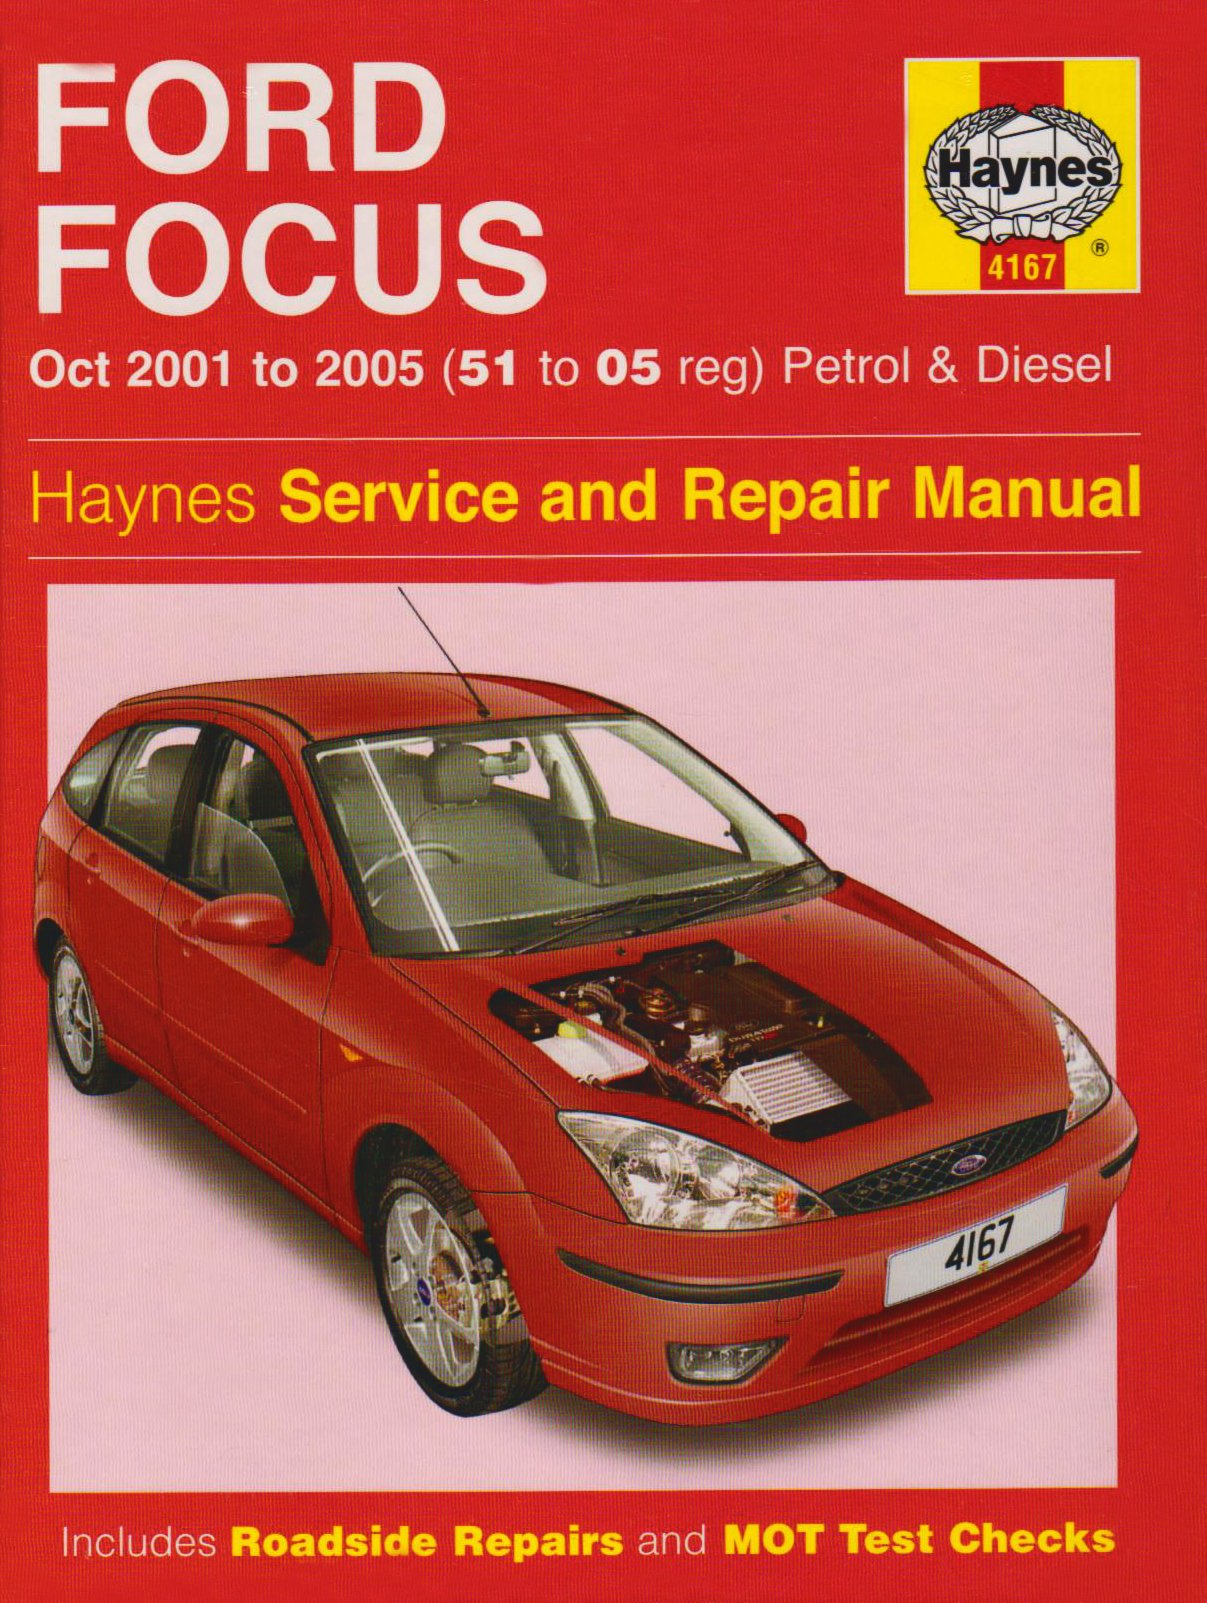 ford focus petrol and diesel service and repair manual 2001 to 2005 rh amazon co uk 2005 focus manual transmission fluid ford focus 2005 manual de usuario